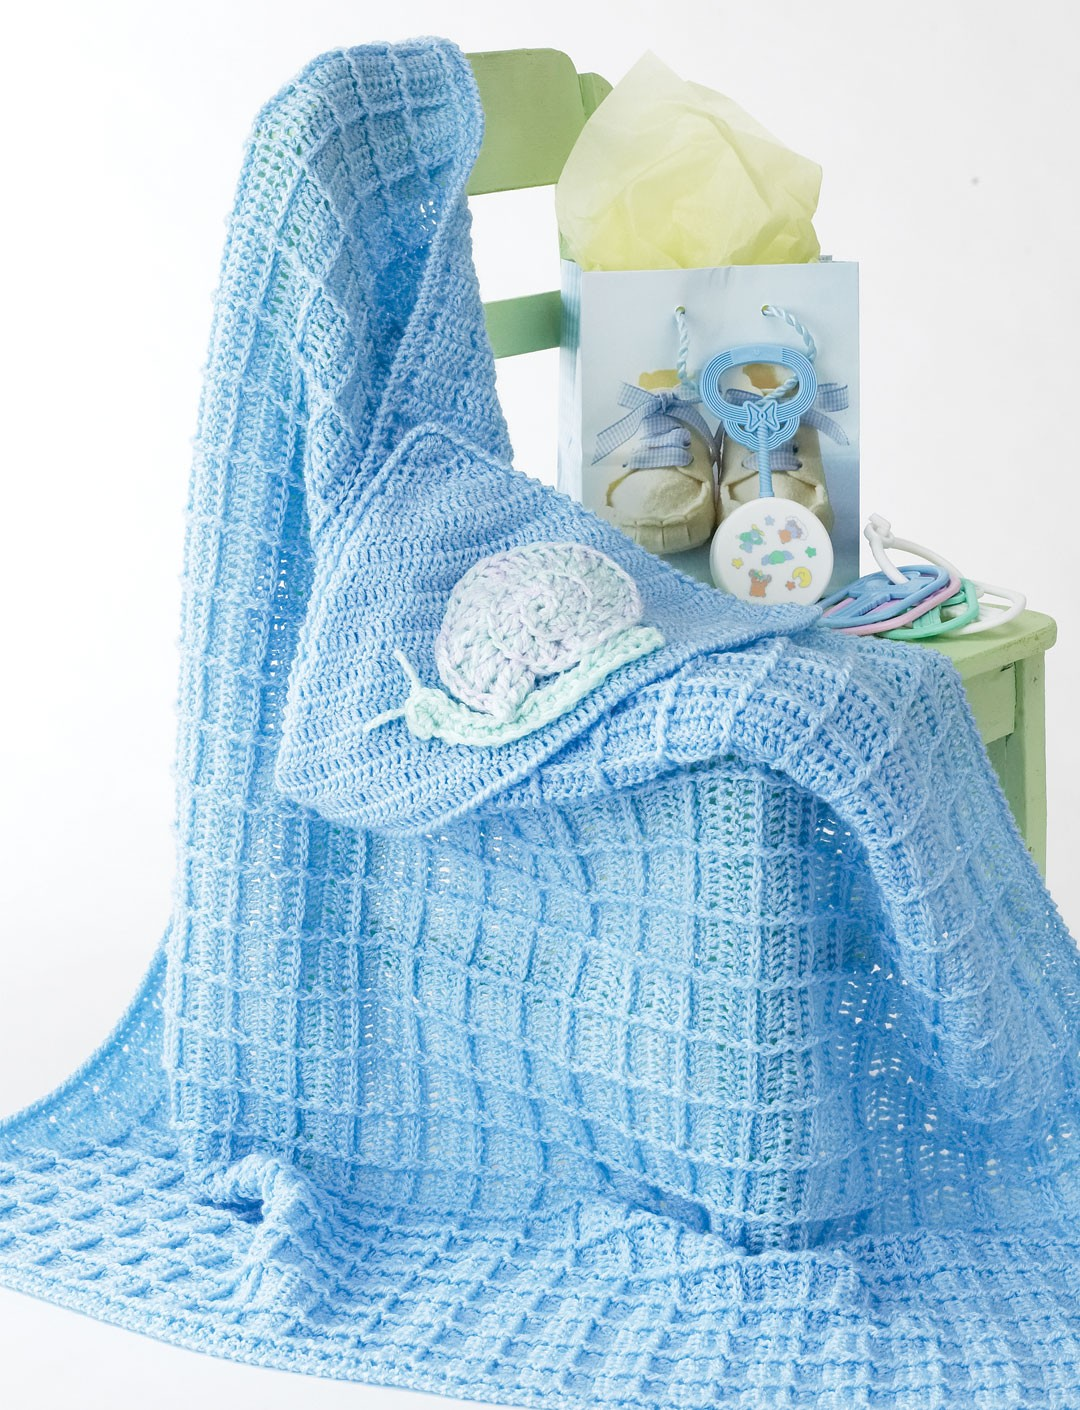 Knitting Pattern Baby Hooded Blanket : Bernat Snail Blanket, Crochet Pattern Yarnspirations